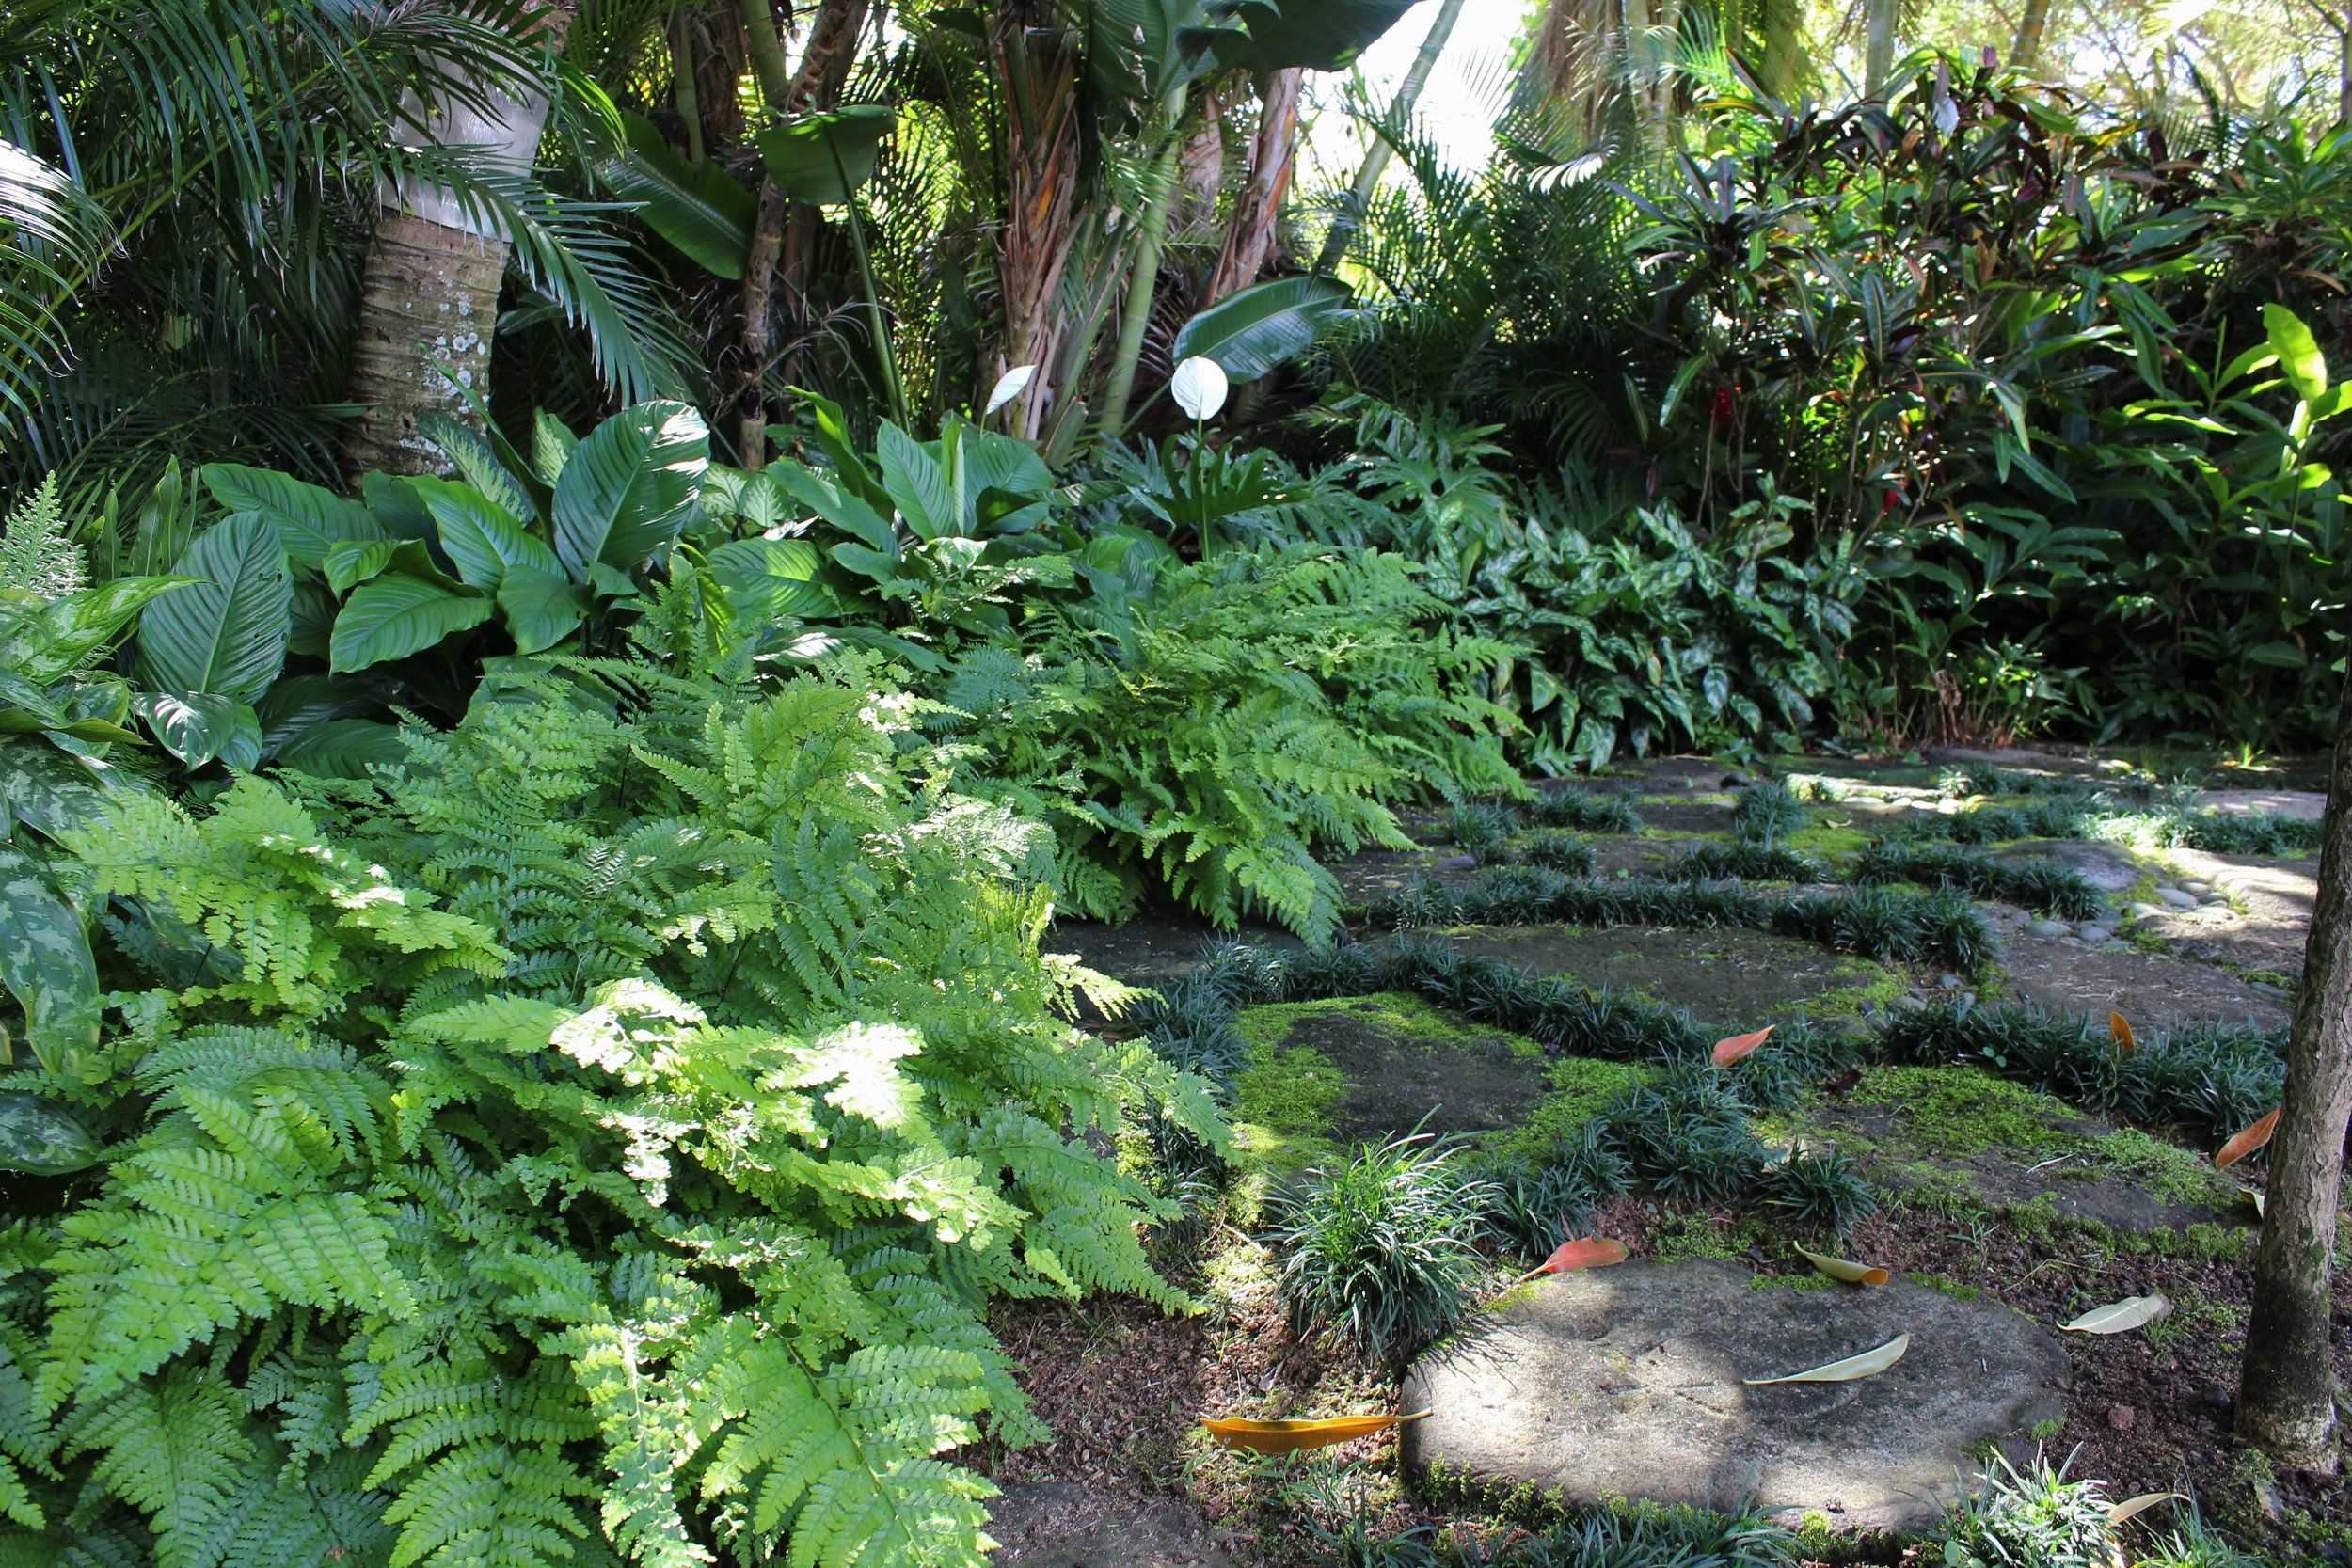 INSTALLATION - We specialize in the installation of tropical plants, stone sculptures, pathways, lighting and irrigation systems for commercial and residential properties.